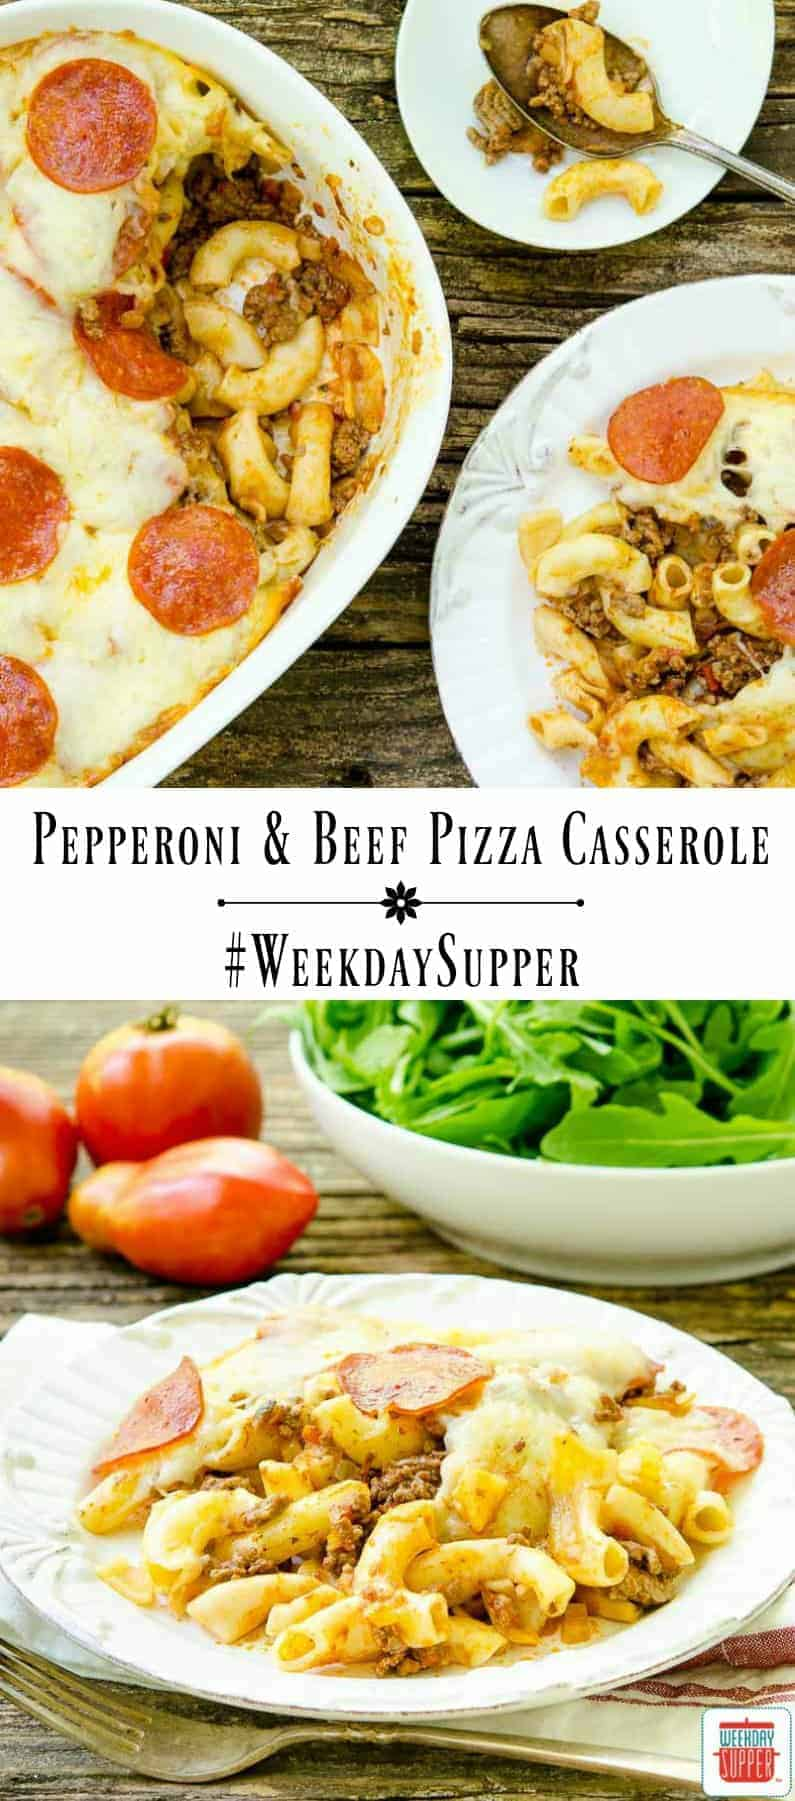 Pepperoni and Beef Pizza Casserole is loaded with macaroni and topped with mozzarella cheese. Serve it with a simple green salad for delicious meal. #WeekdaySupper